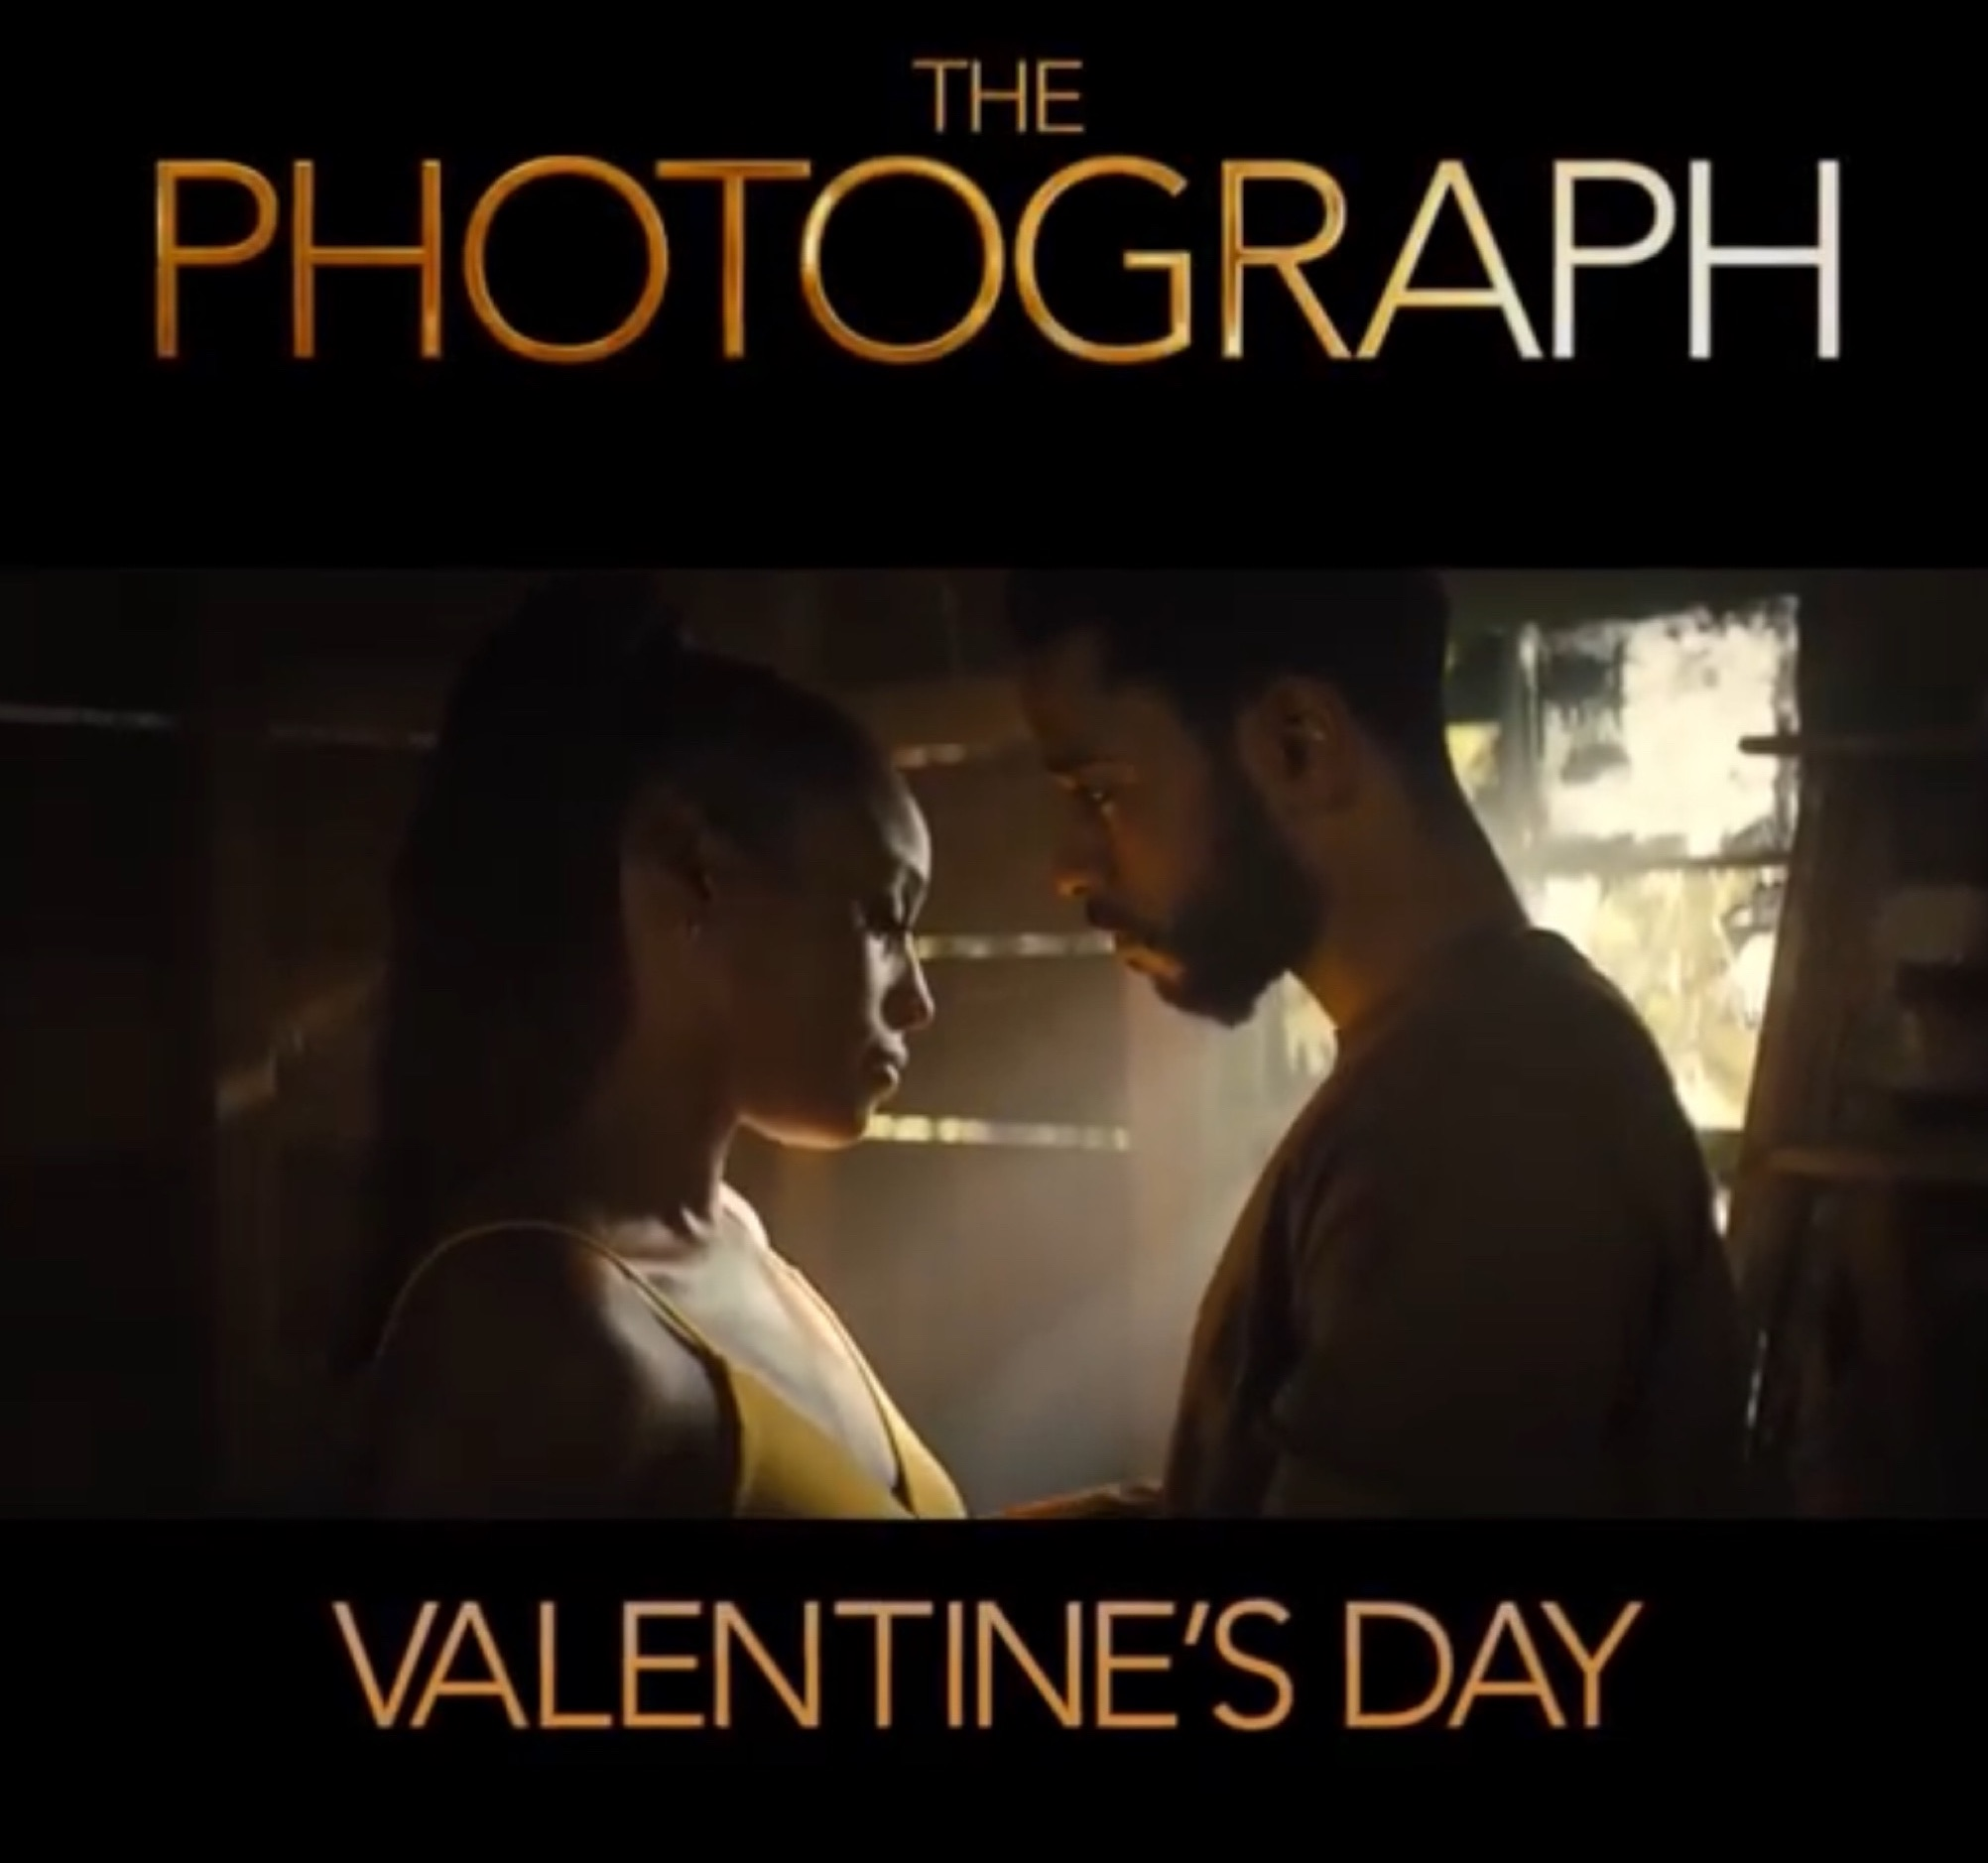 The photograpgh